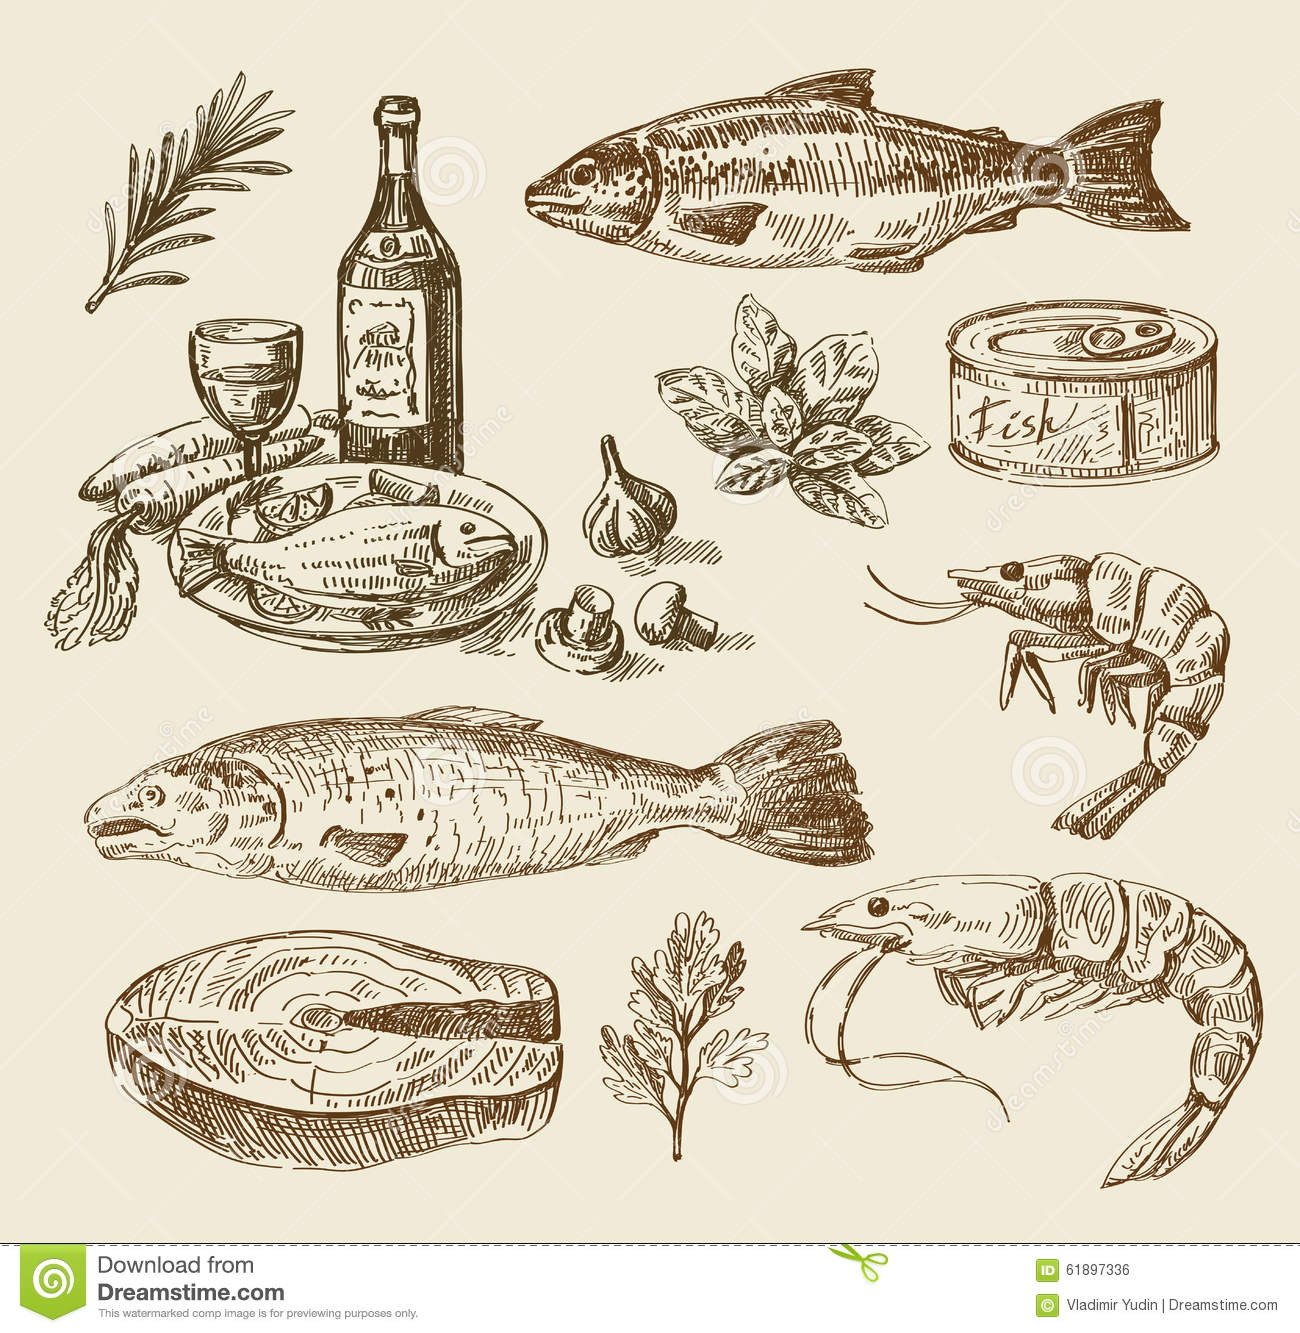 Hand Drawn Sea Food Sketch Stock Vector. Illustration Of Cooking - 61897336